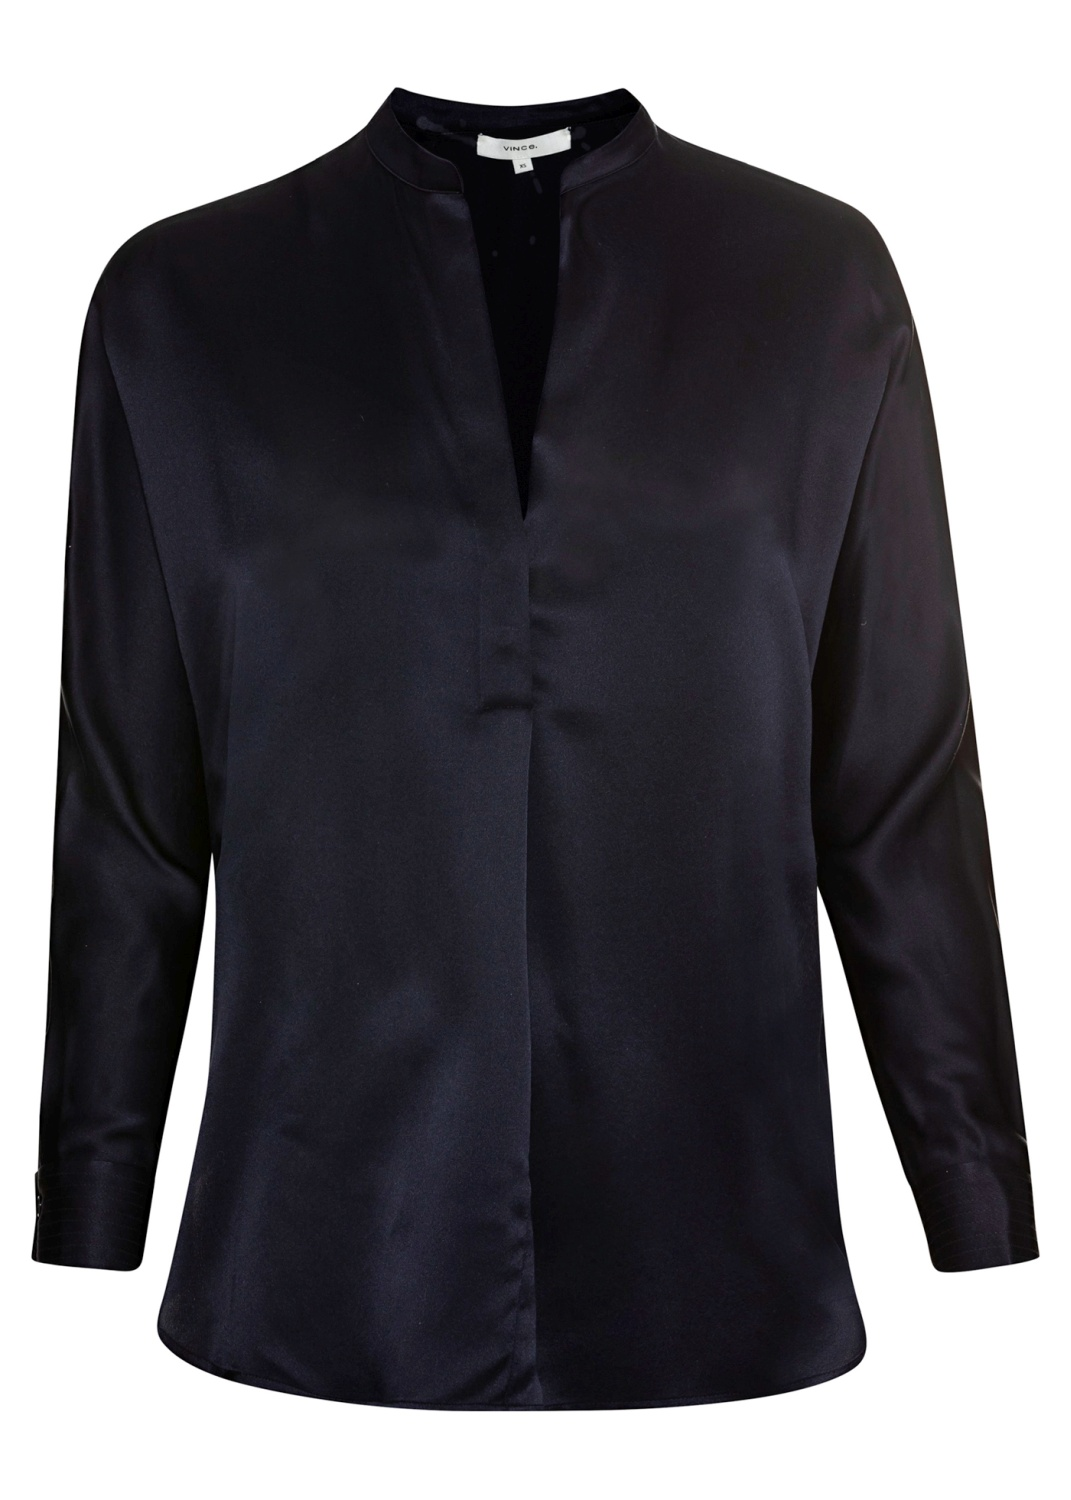 BAND COLLAR BLOUSE image number 0